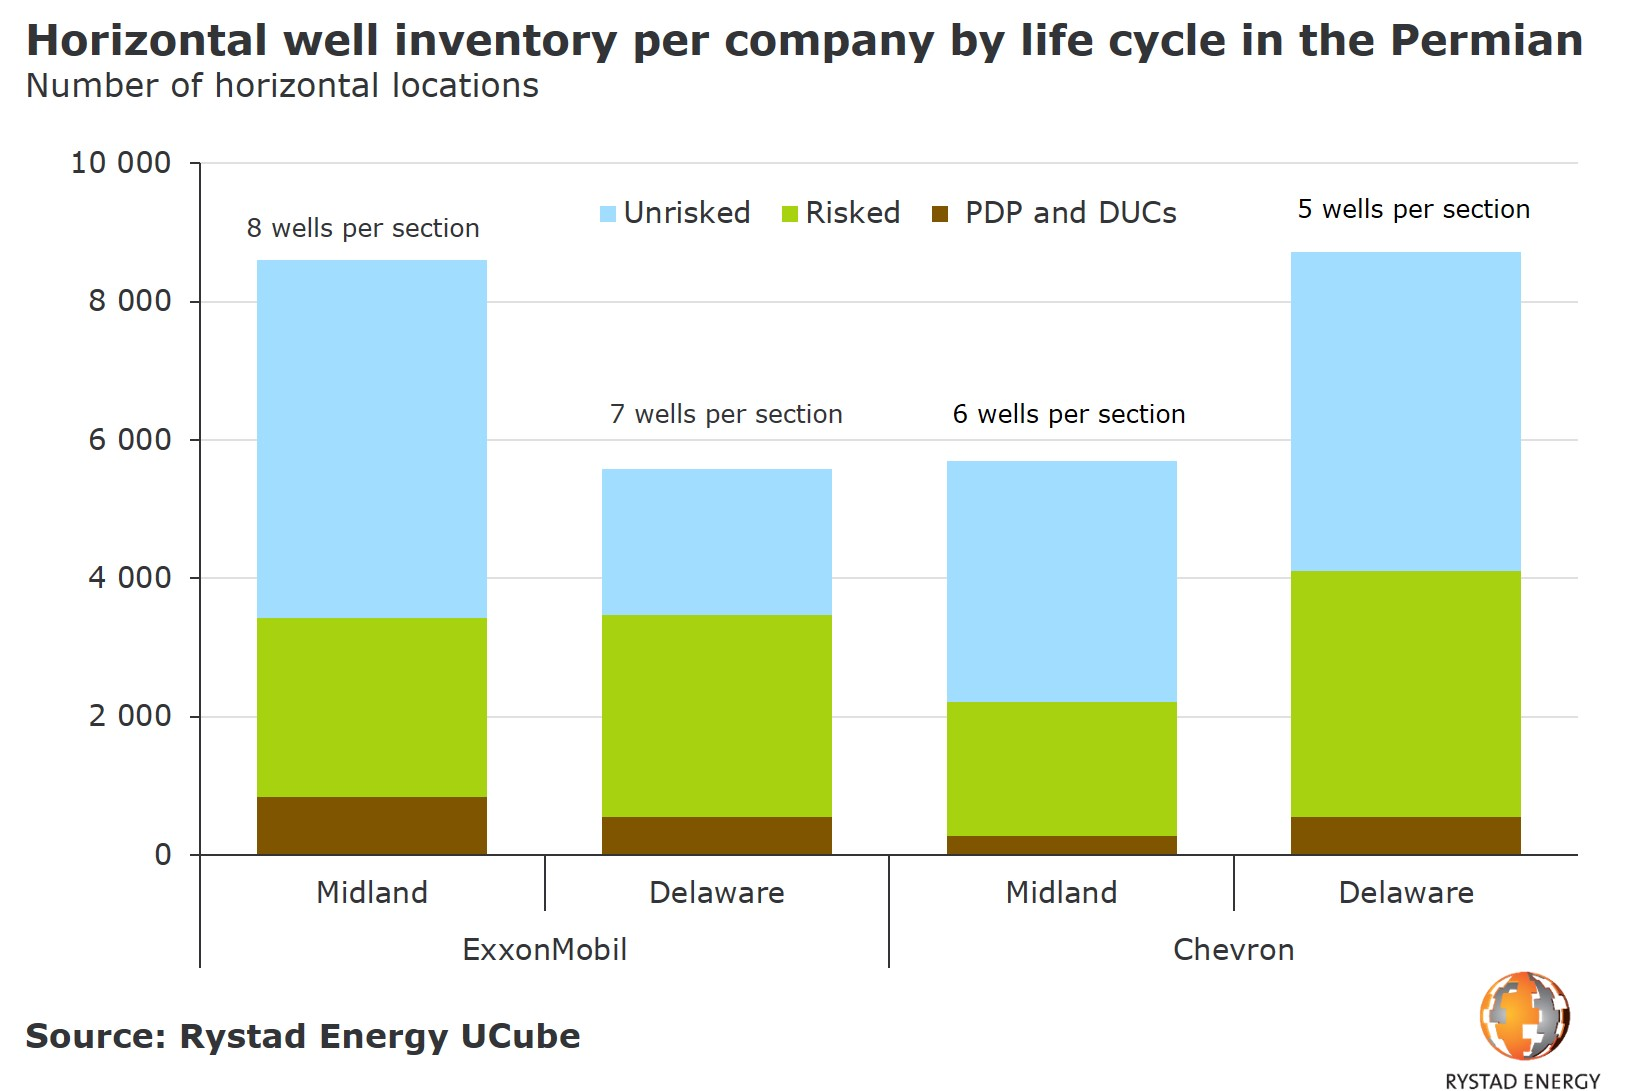 A bar chart showing the horizontal well inventory per company by life cycle in the Permian in number of horizontal locations